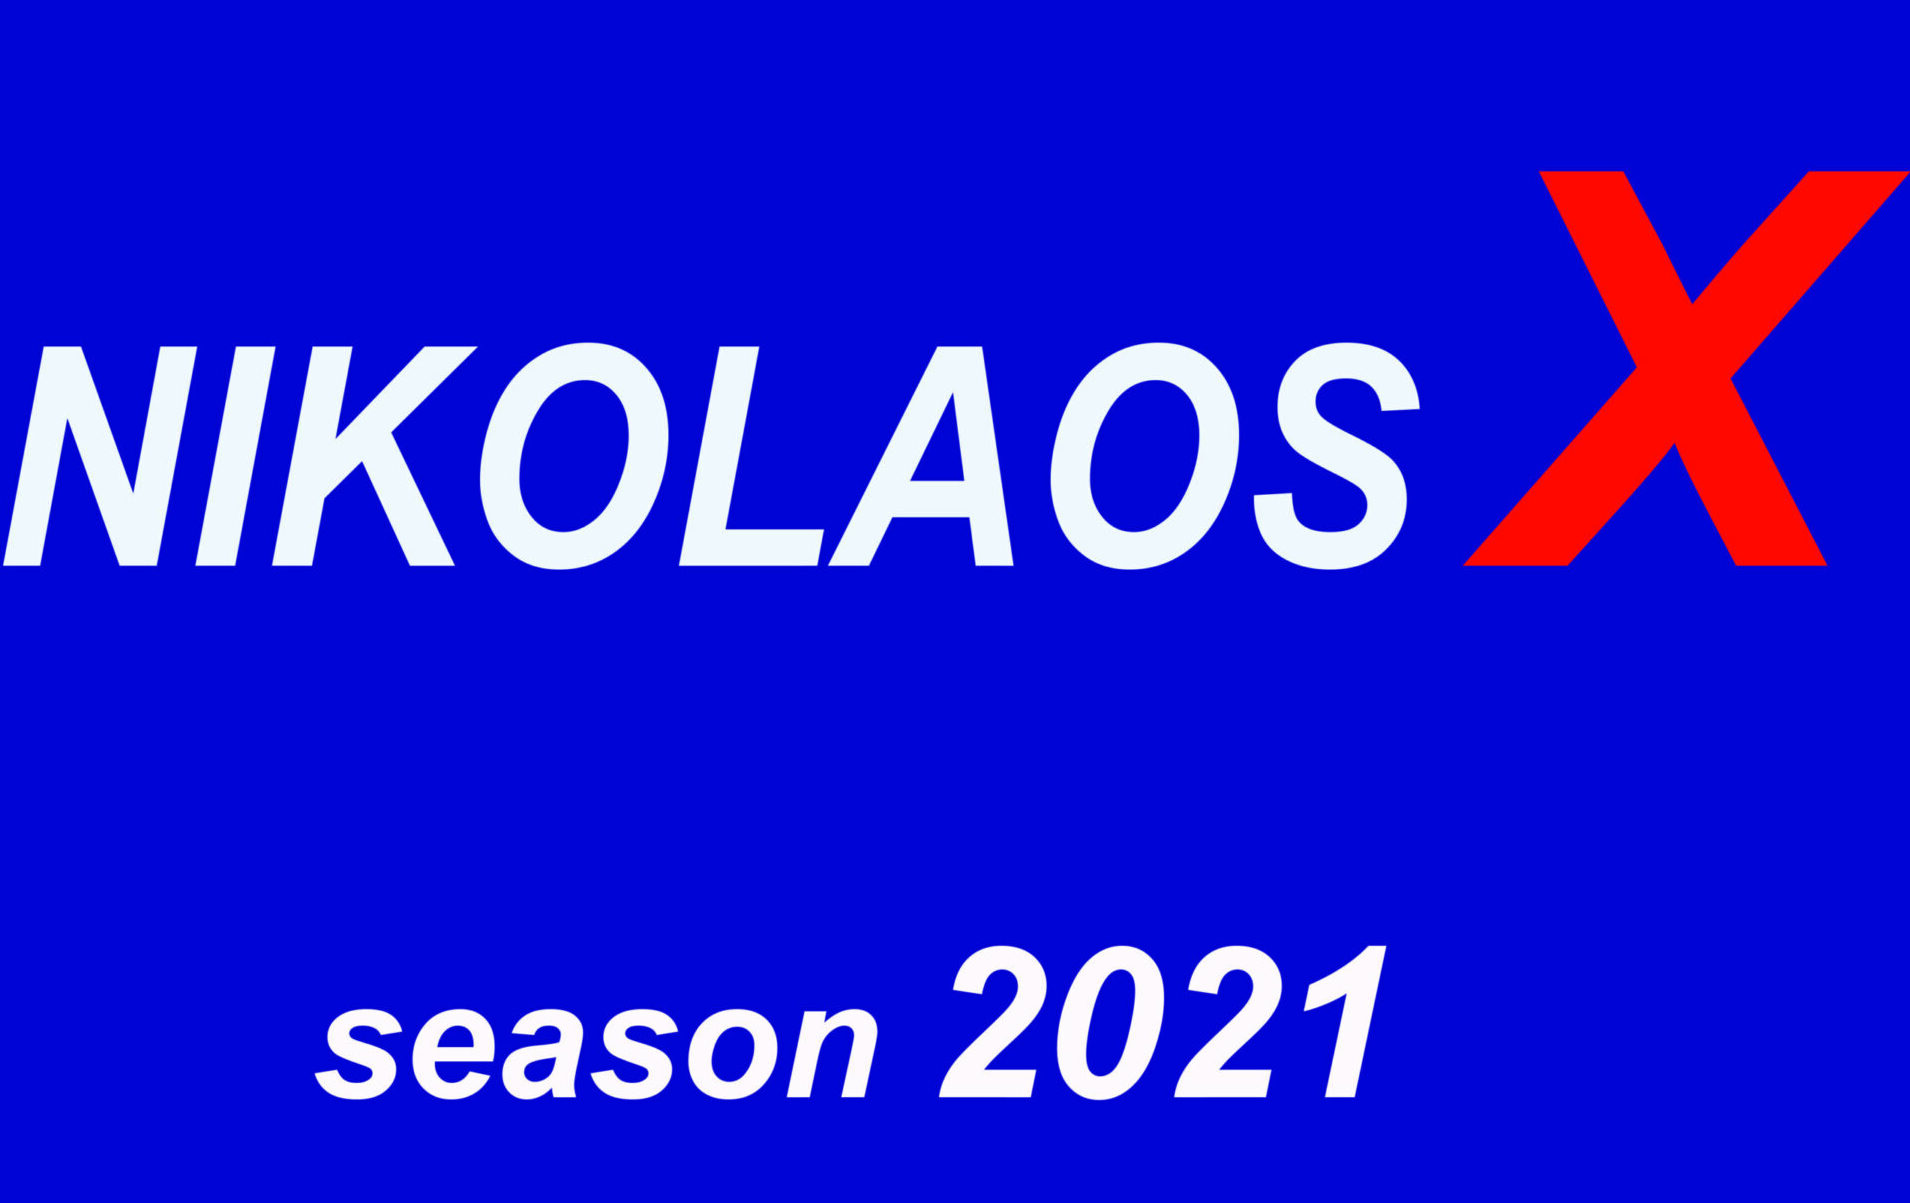 You are currently viewing 2021 season